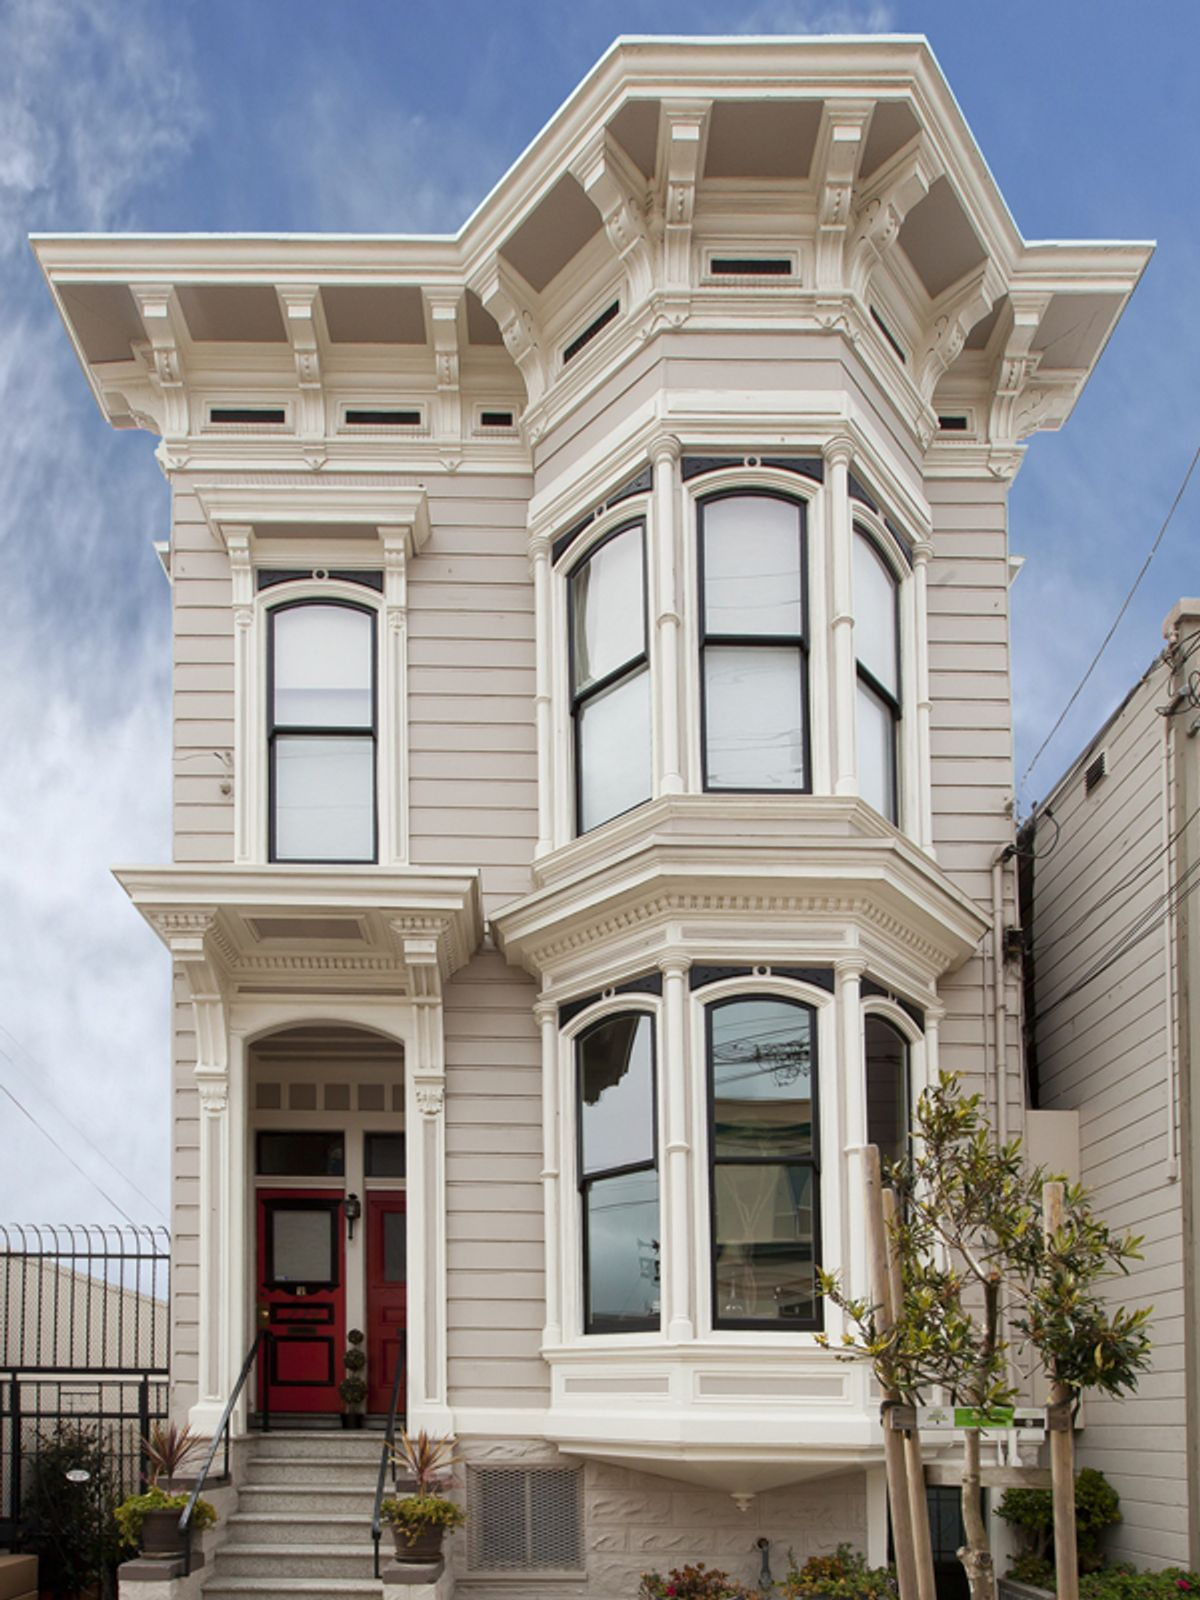 73 Wood Laurel Heights Victorian Flat, San Francisco CA Condominium - San Francisco Real Estate